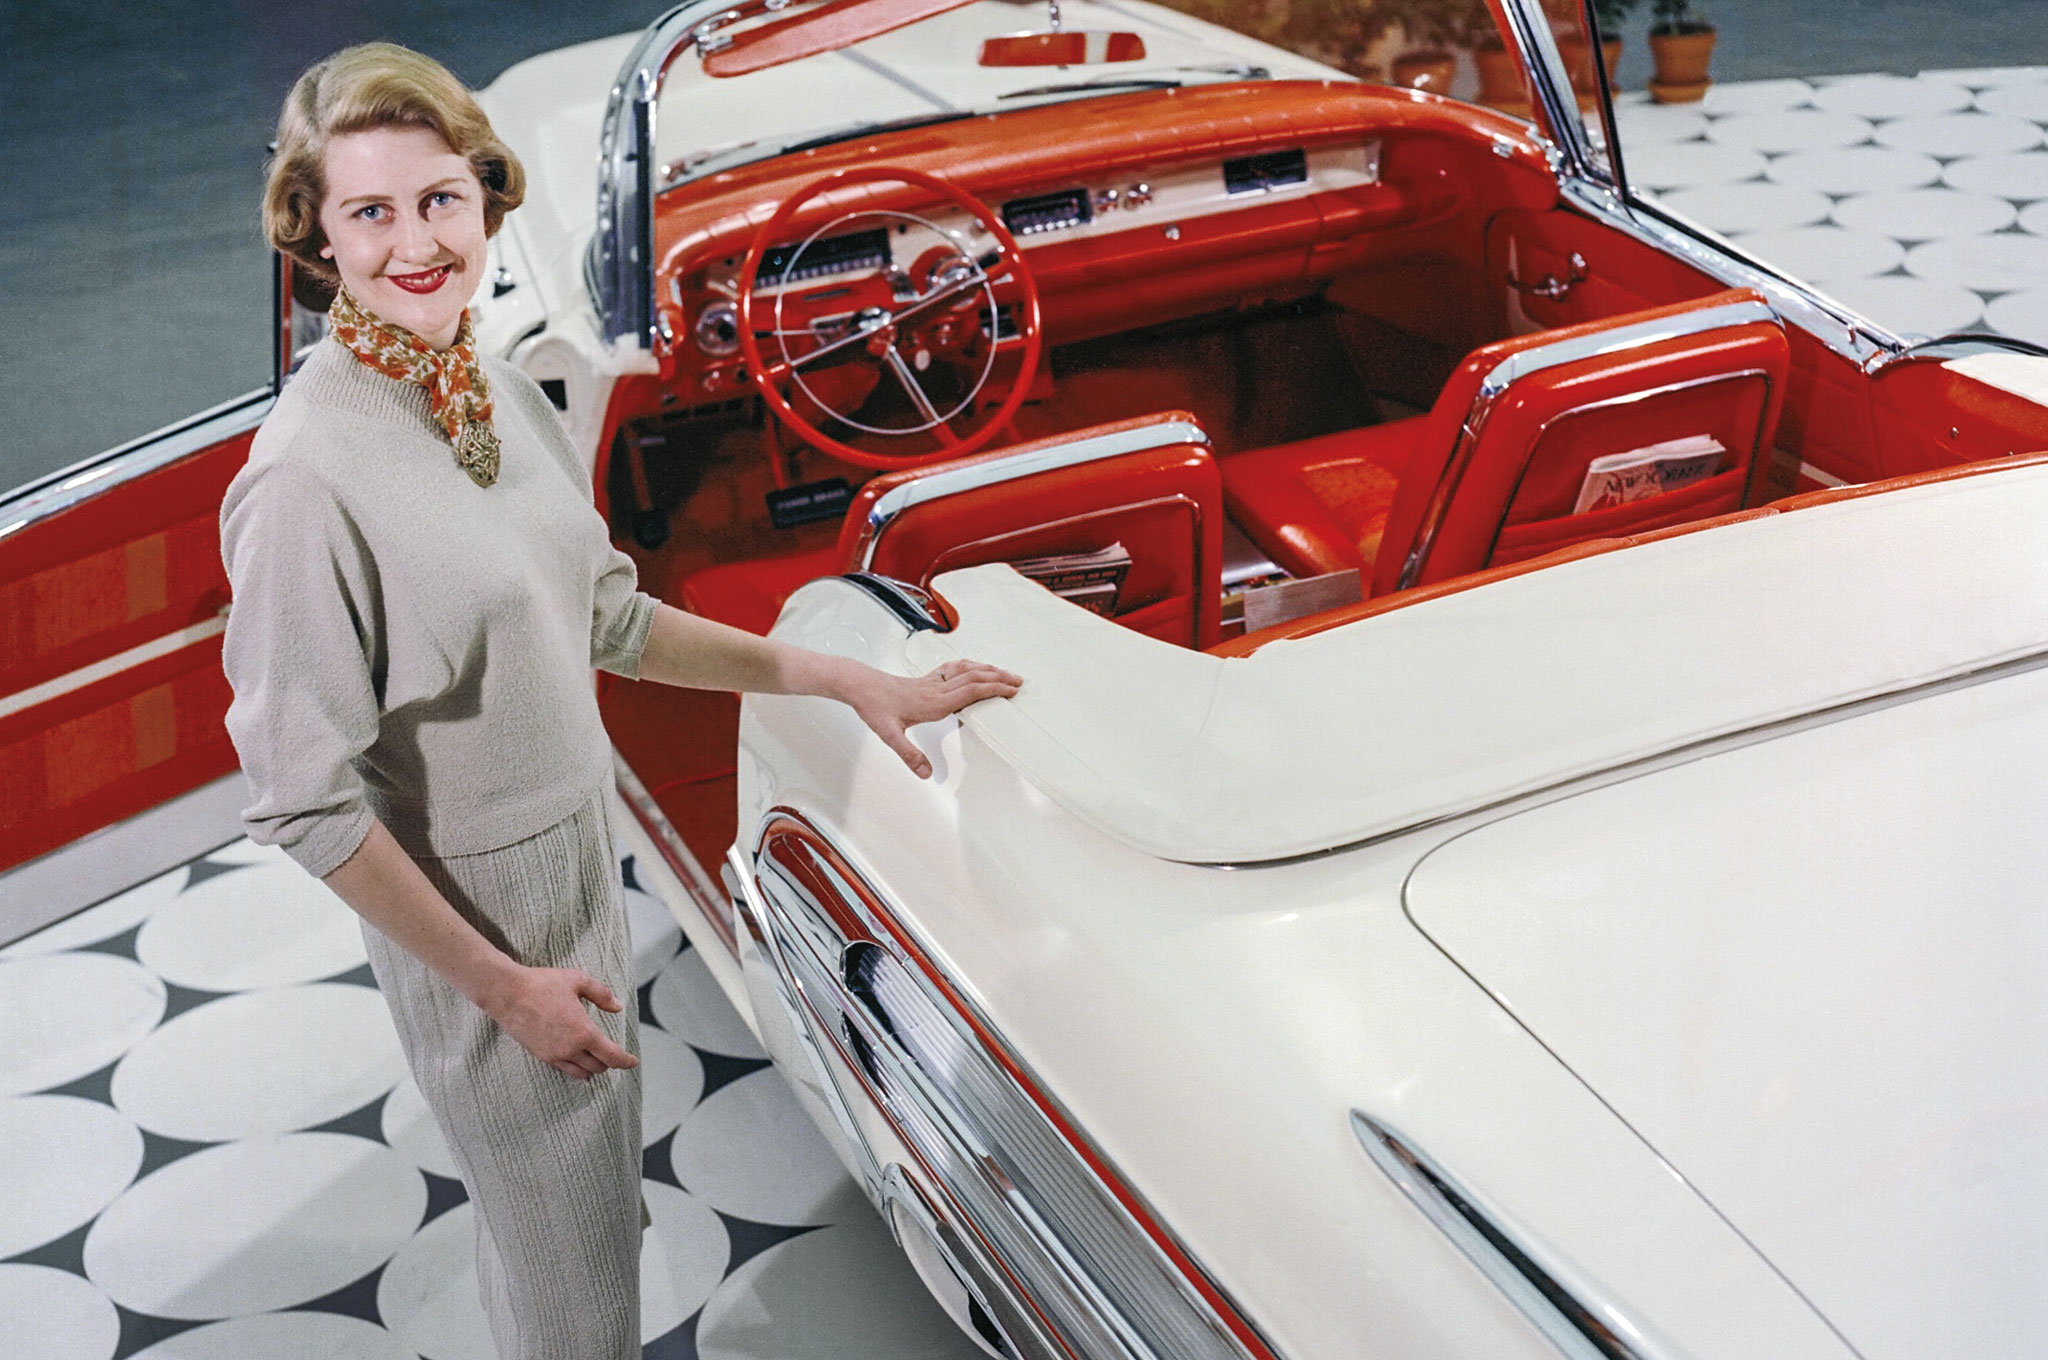 Marjorie Ford Pohlman with the Tampico Buick Special. She also designed a top-of-the-line hardtop (see opening photo).